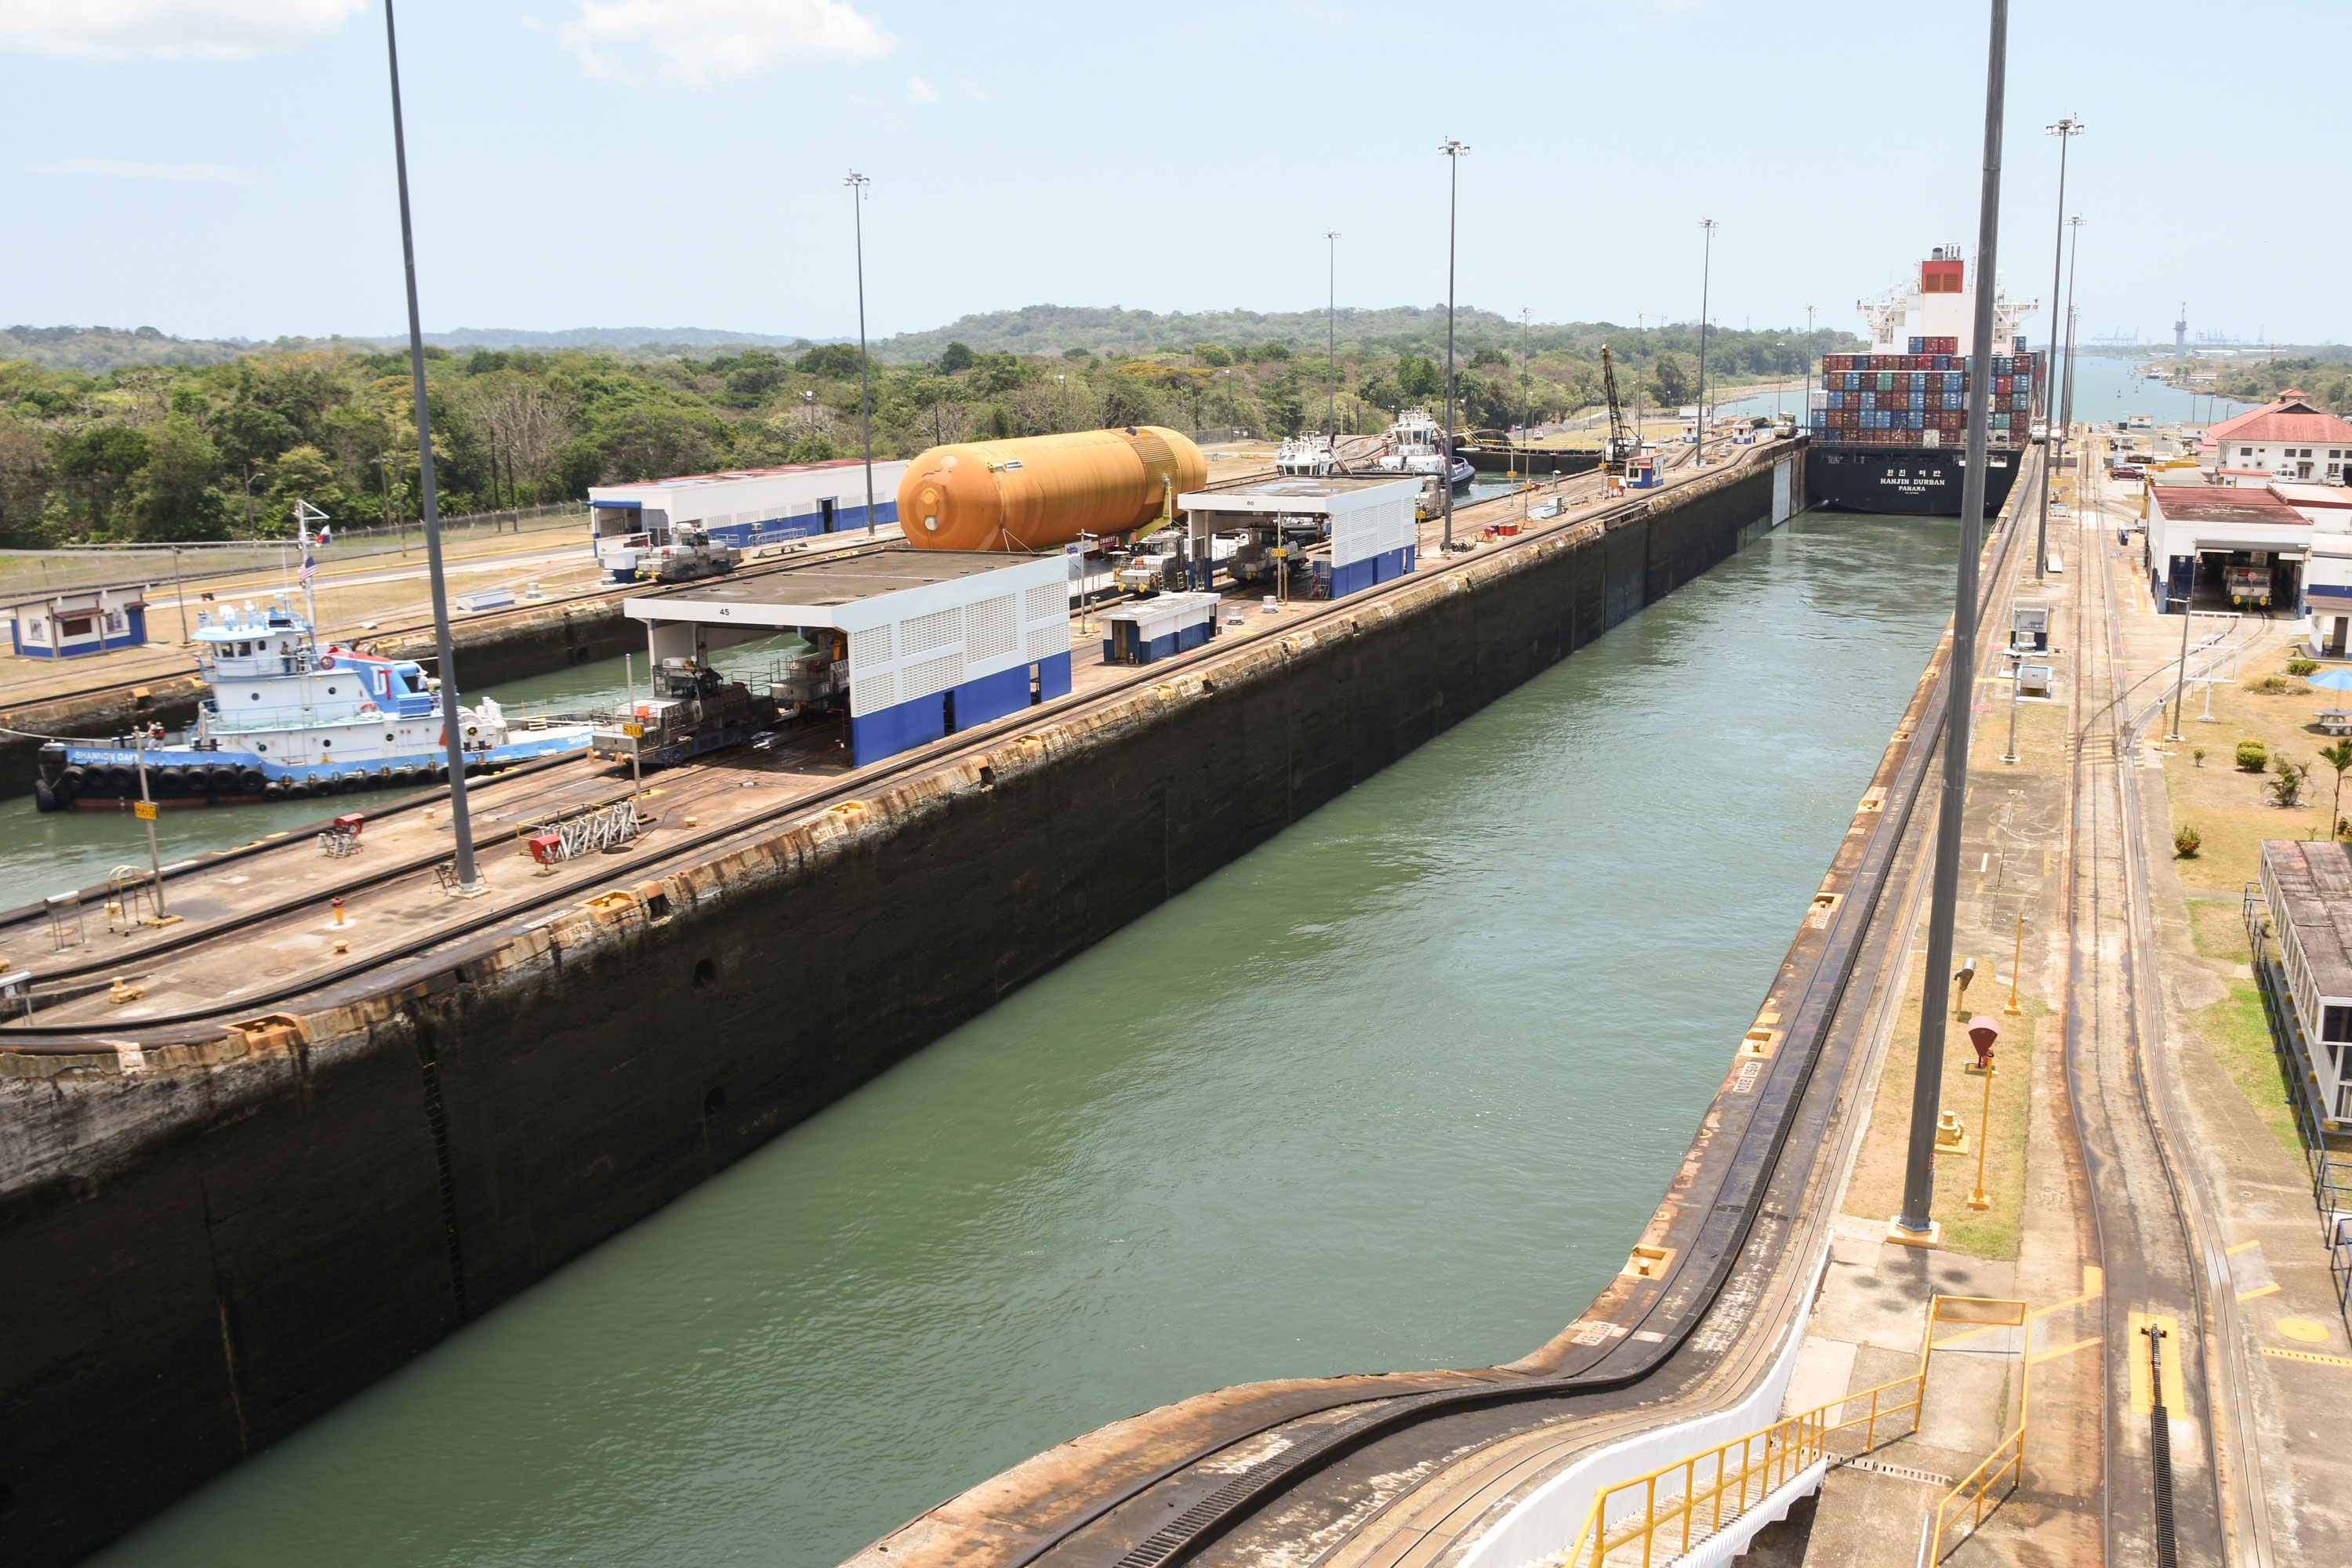 ET-94 passed from the Atlantic Ocean through the Panama Canal Gatun locks in Panama on April 25. The tank spent the night moored in Gatun Lake before traveling through a final set of locks into the Pacific Ocean the following day. Credit: Jason Davis/The Planetary Society (CC BY-NC-SA 2.0)